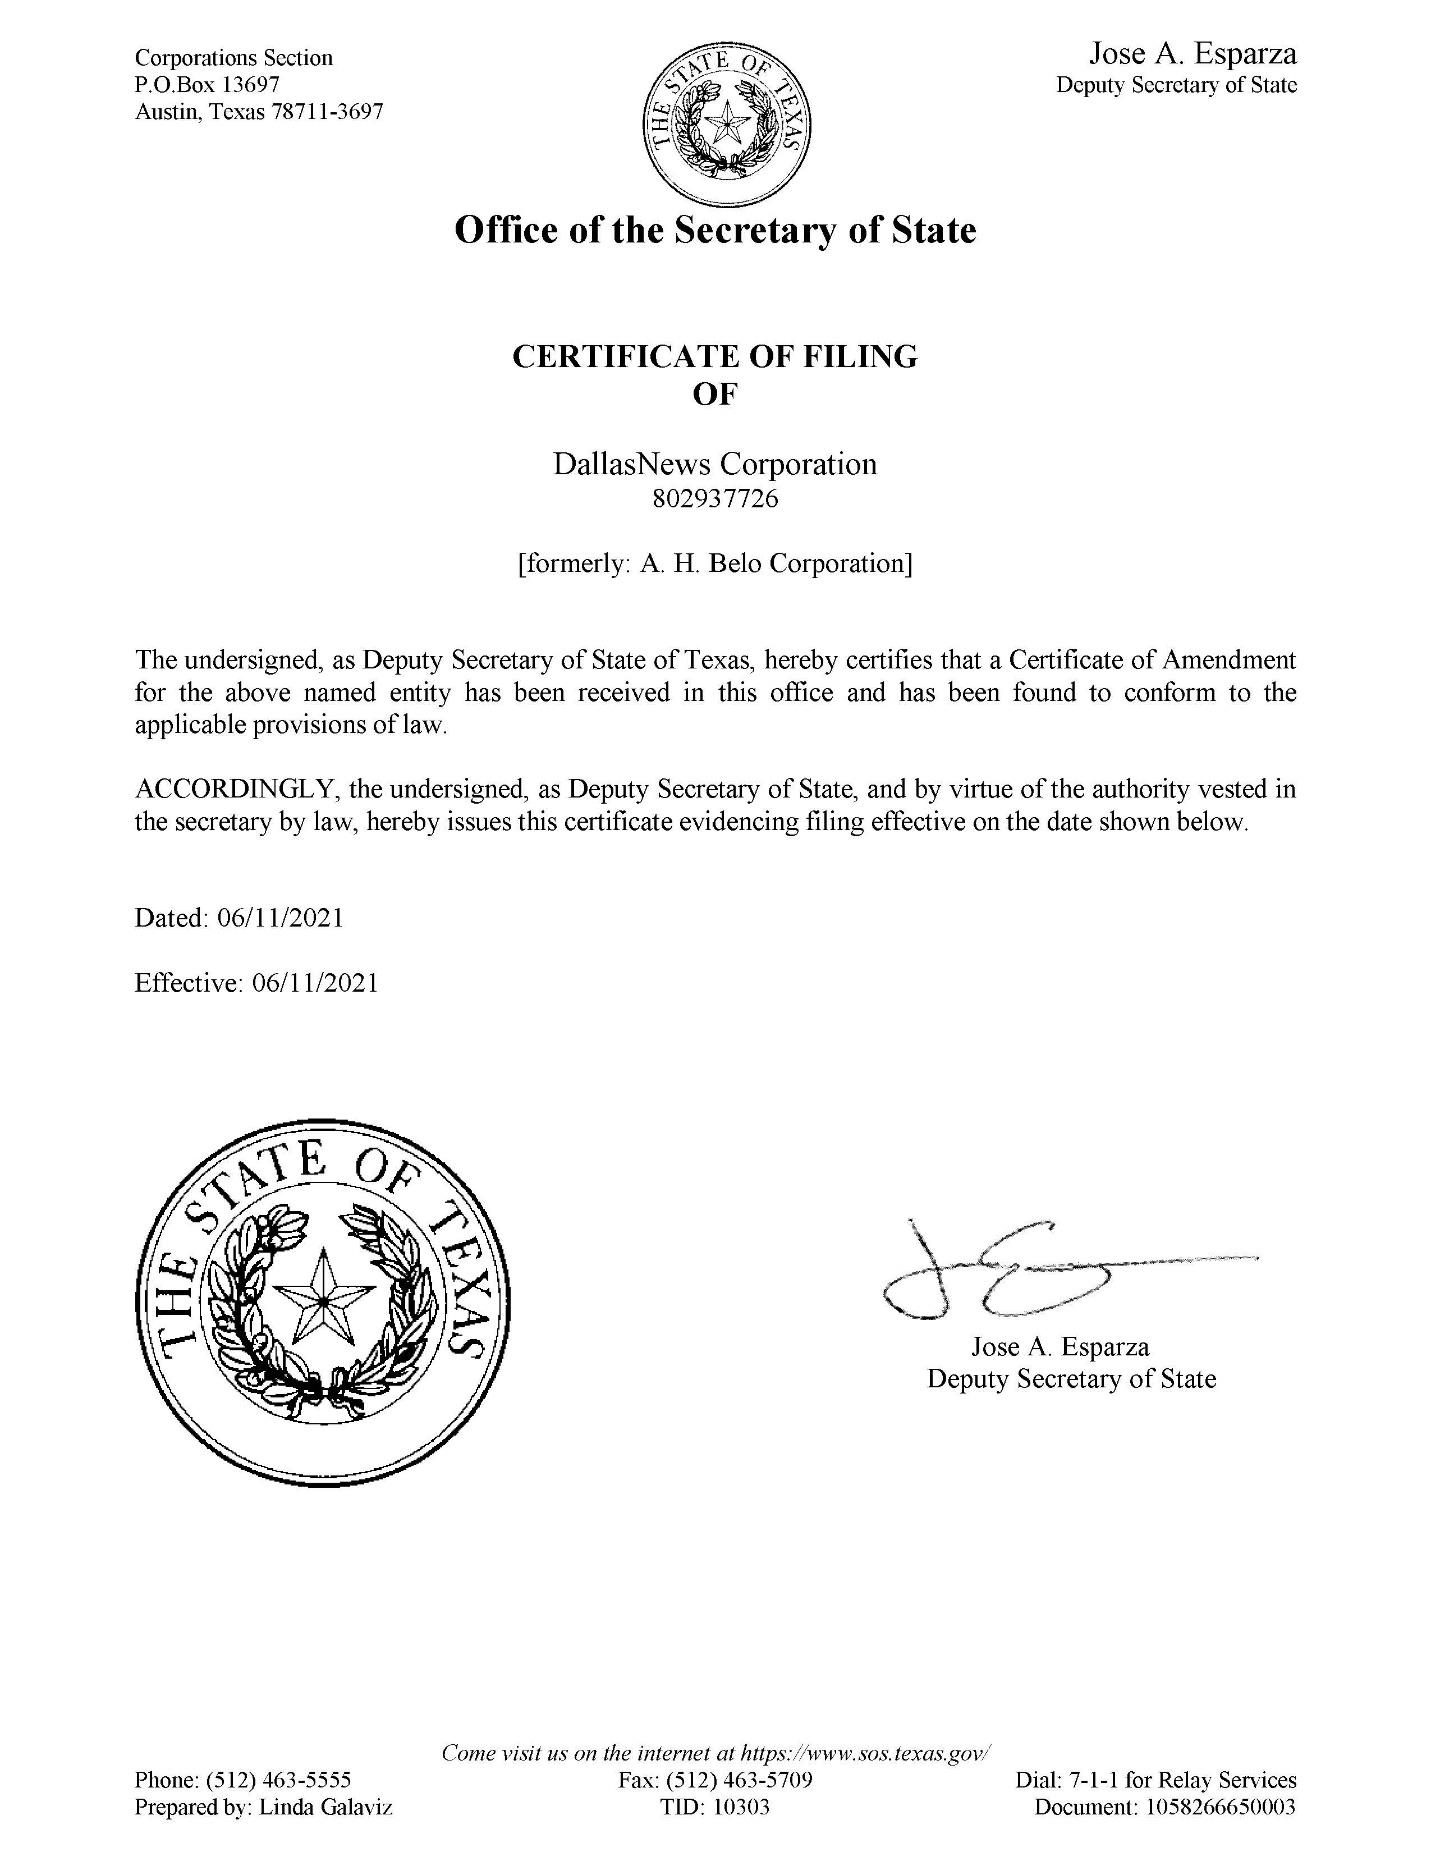 X:\TX\Dept\Corp-Qrtly-Financial-Reporting\2021\Q2 2021\Press Releases\8-K Amendment to Cert of Formation and Bylaws\TX Certificate of Amendment Name Change (FILED 06.11.2021)_original to be filed with the SEC_Page_1.jpg